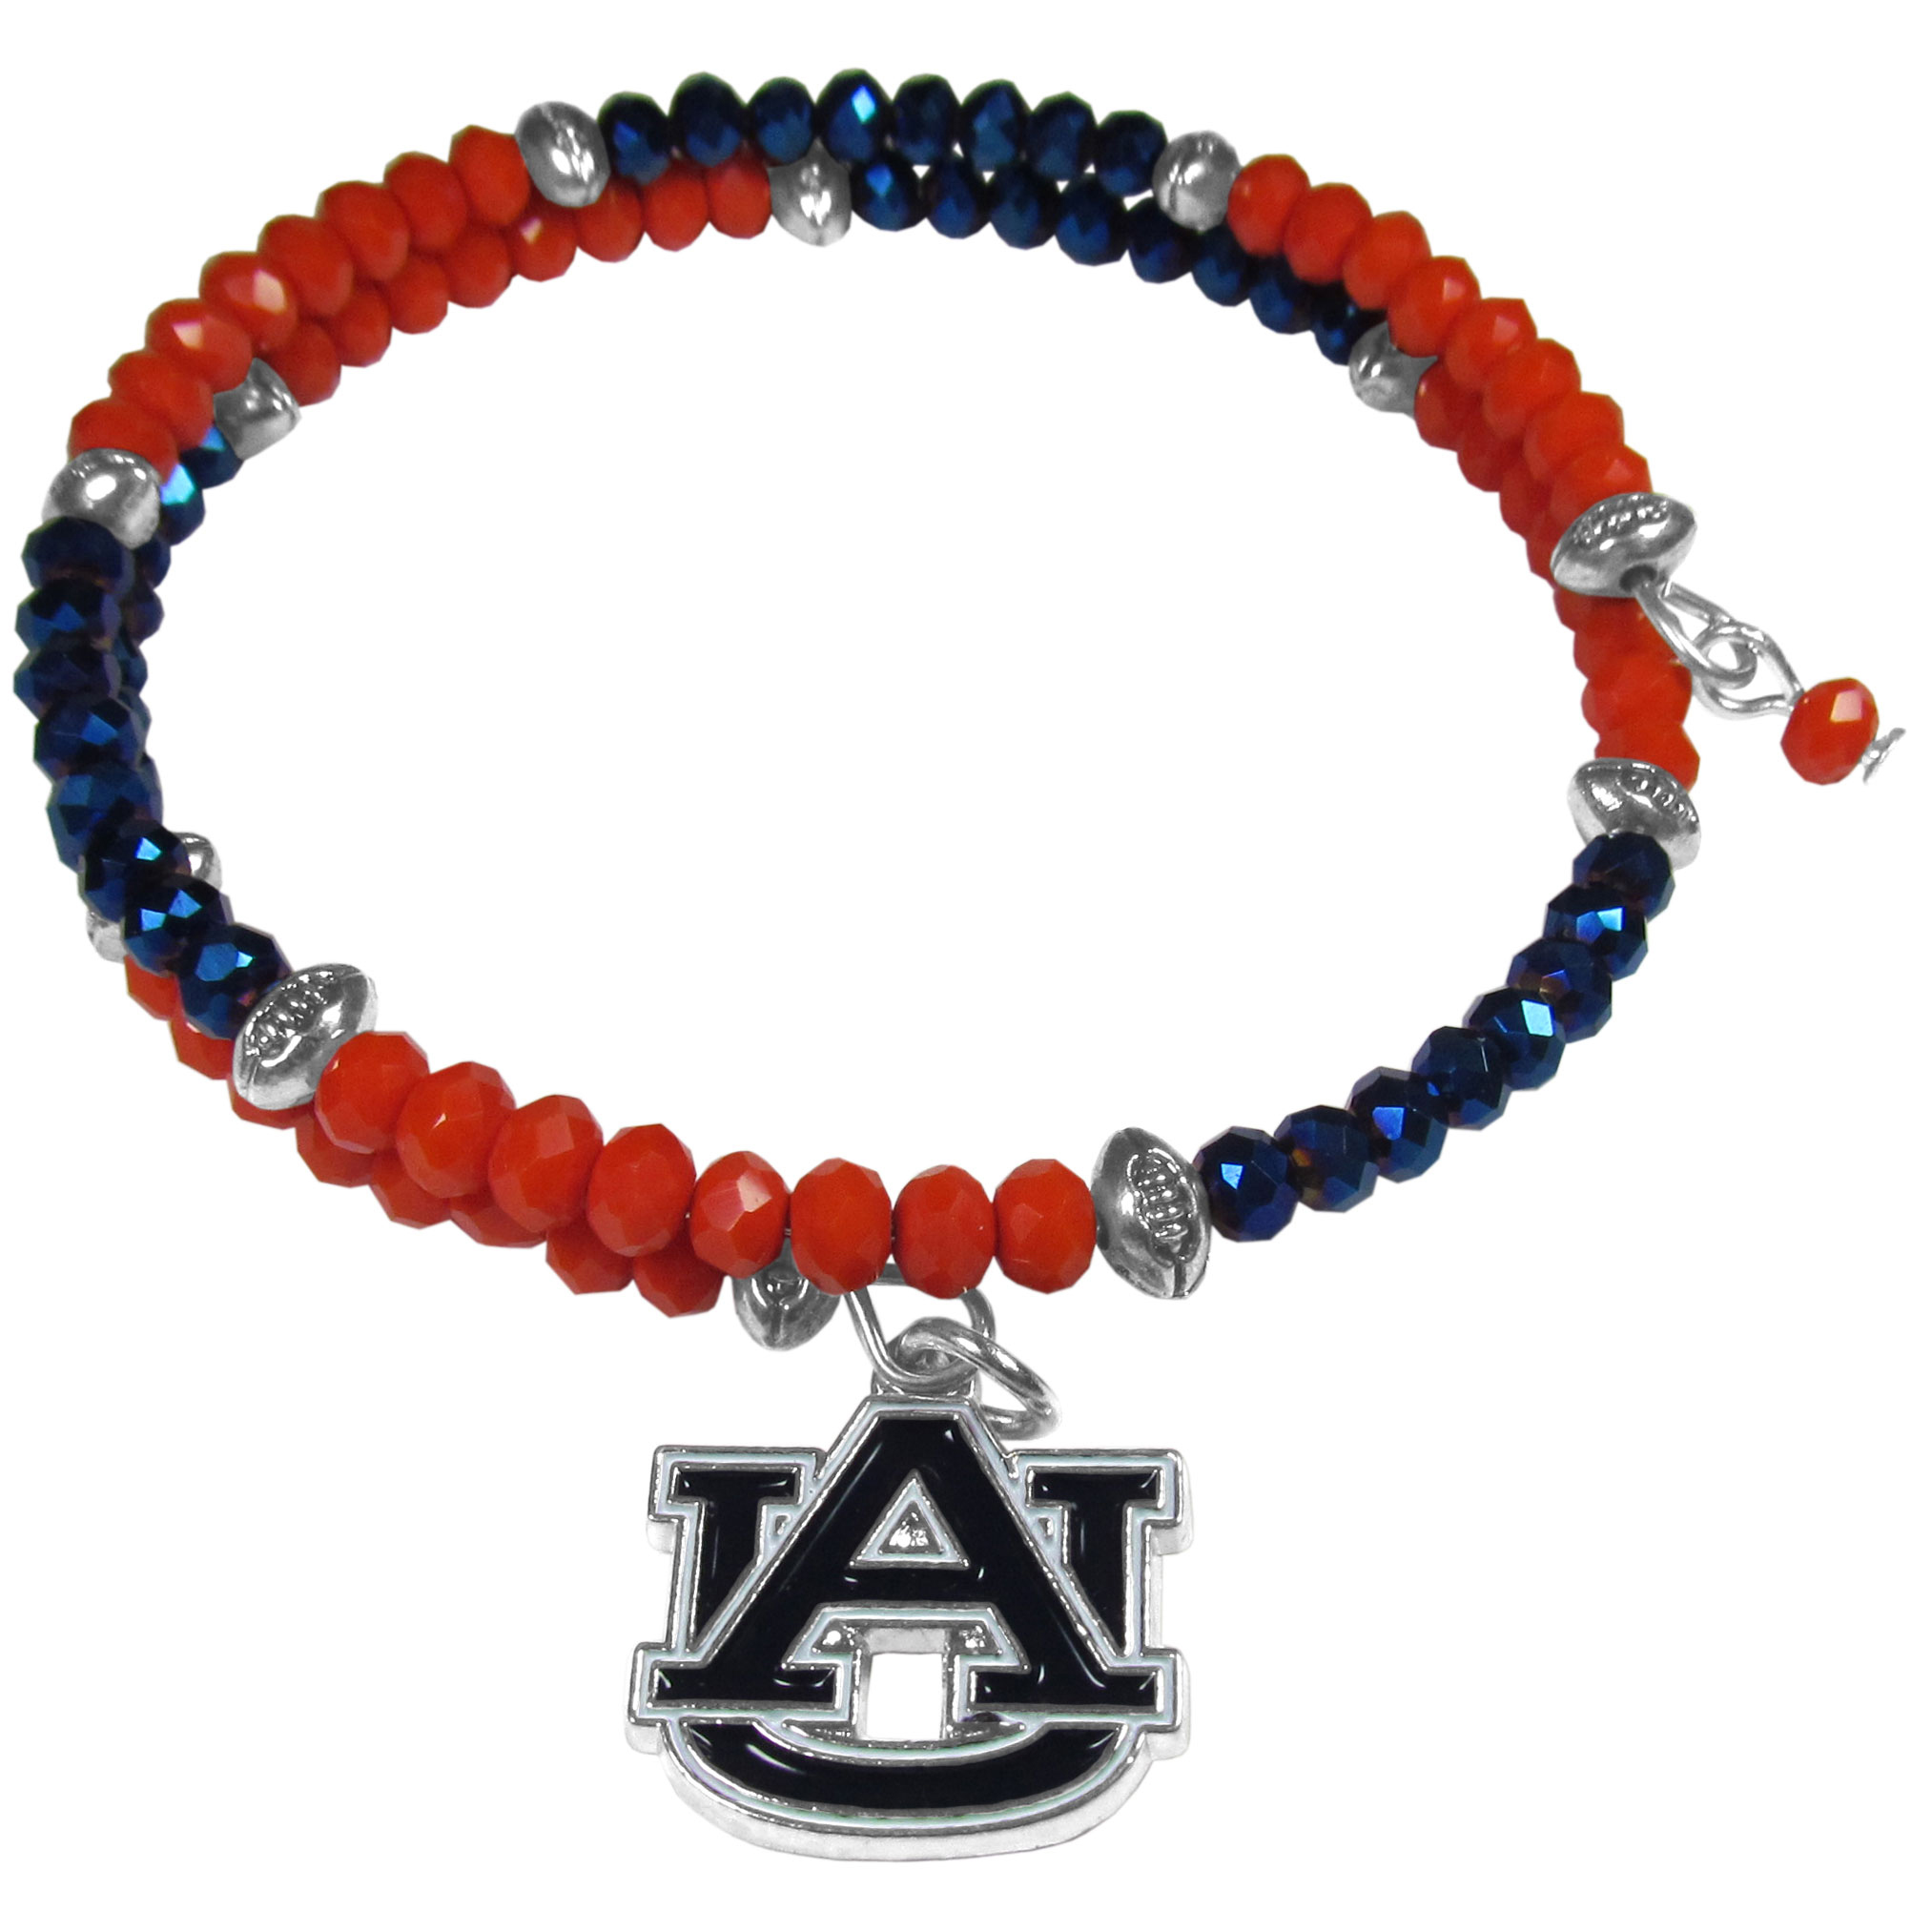 Auburn Tigers Crystal Memory Wire Bracelet - Our Auburn Tigers memory wire crystal bracelet is trendy way to show off your love of the game. The double wrap bracelet is completely covered in 4 mm crystals that are broken up with adorable football beads creating a designer look with a sporty twist. The bracelet features a fully cast, metal team charm that has expertly enameled team colors. This fashion jewelry piece is a must-have for the die-hard fan with chic style.